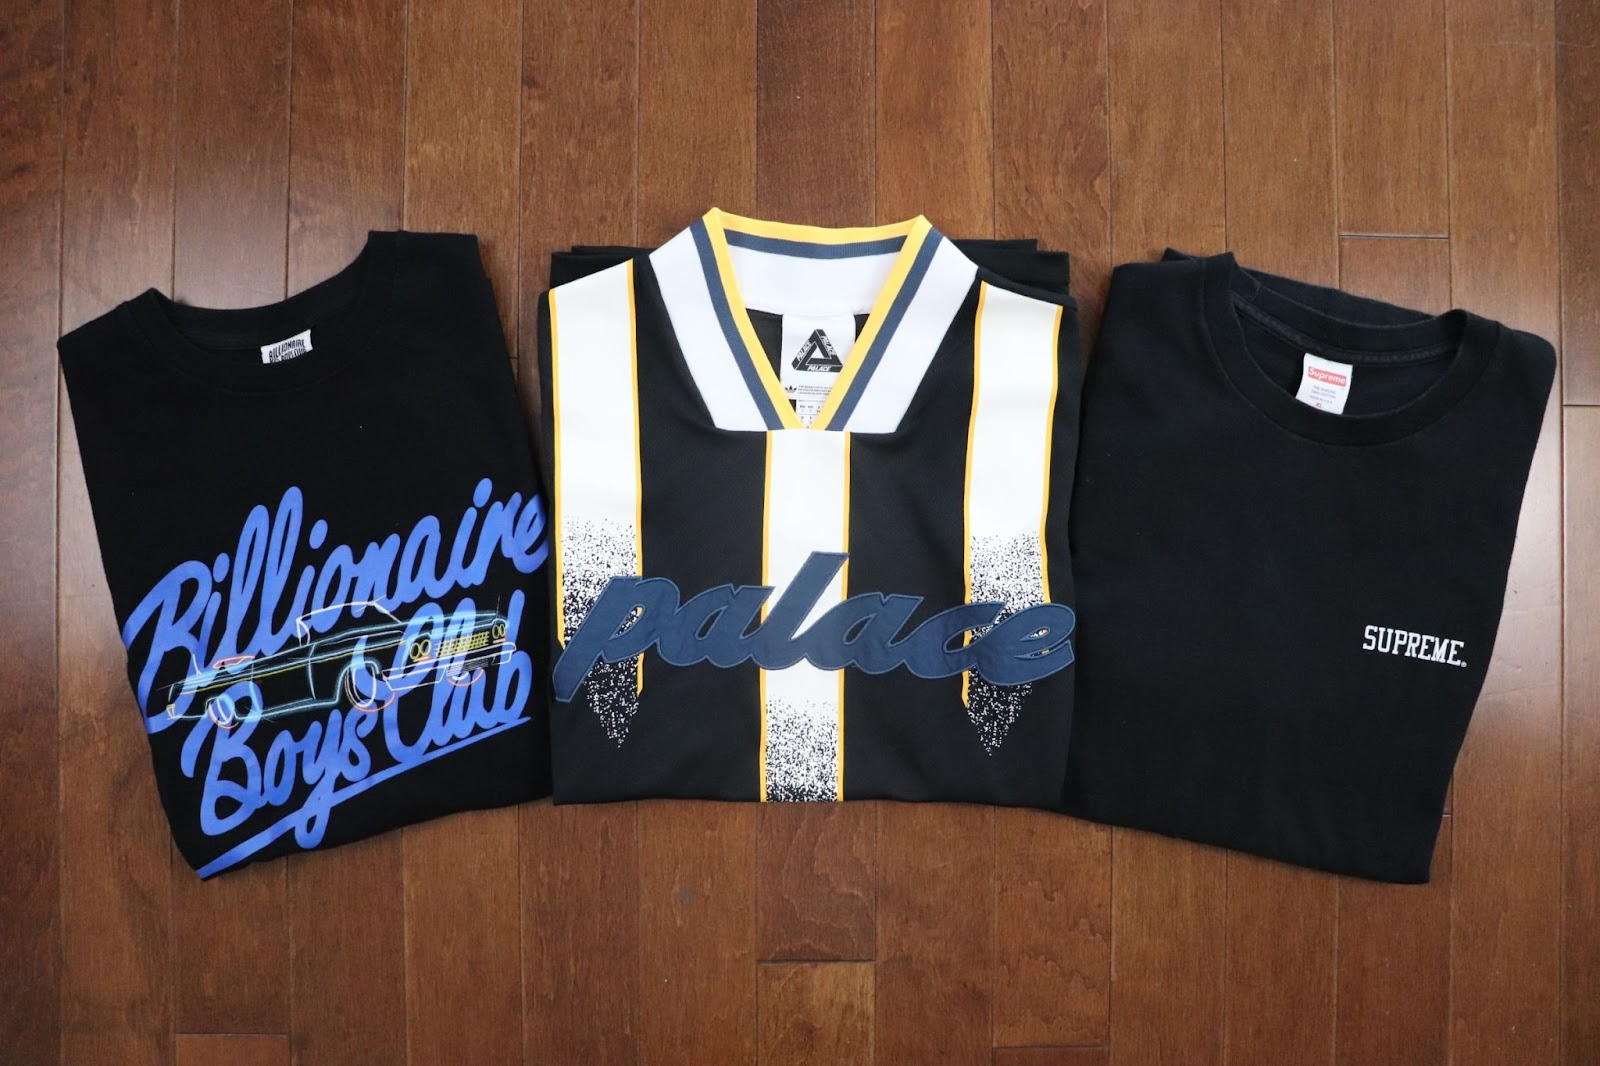 Streetwear to resell online